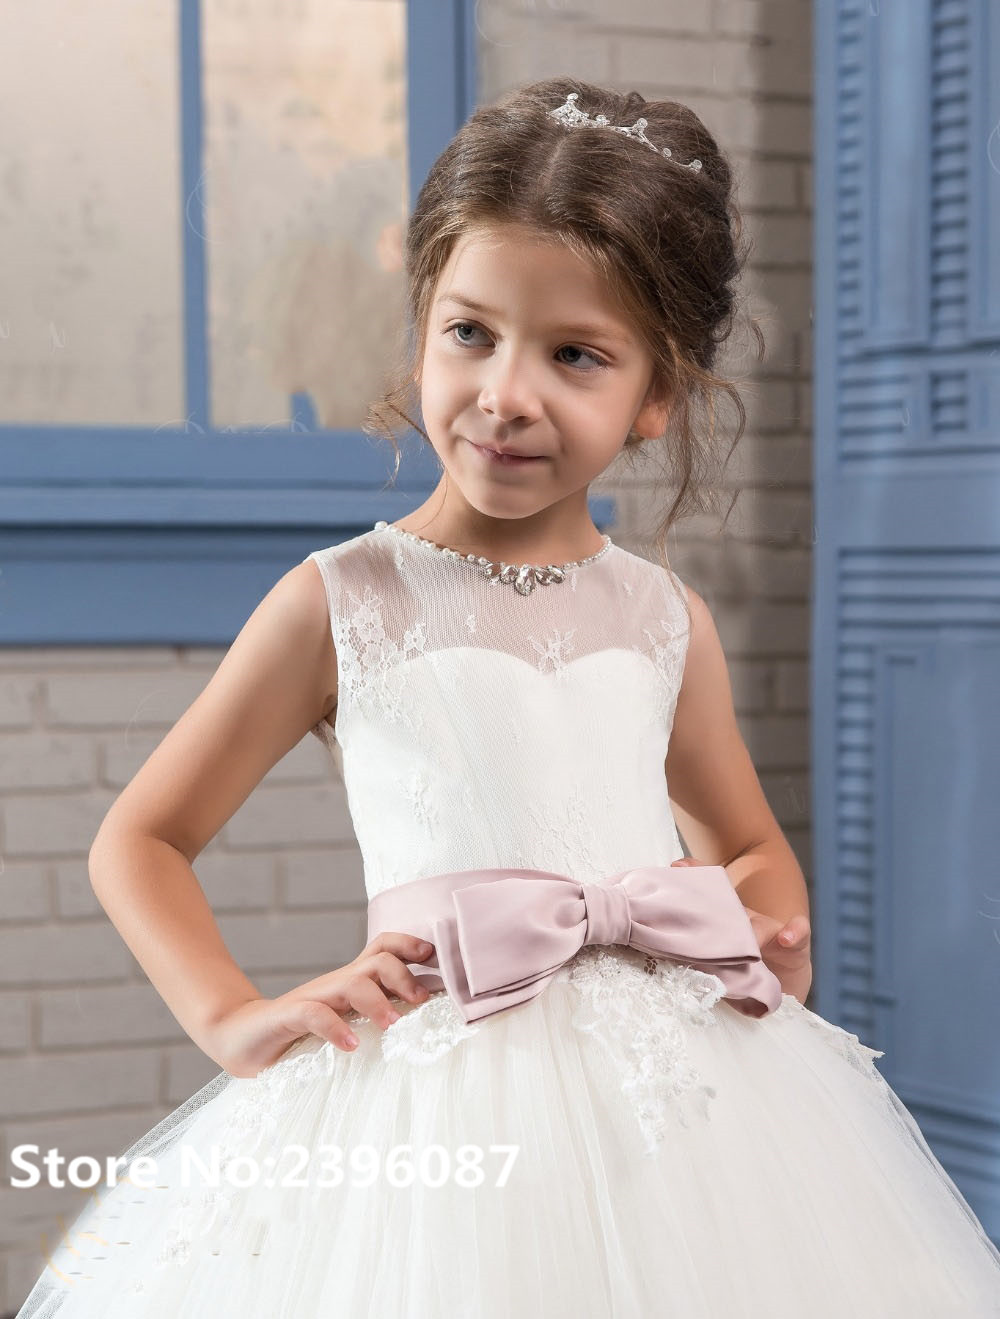 White Tulle Ball Gown Princess   Flower     Girl     Dresses   with Bow Sleeveless O-Neck First Communion   Dress   Vestidos de comunion 2019